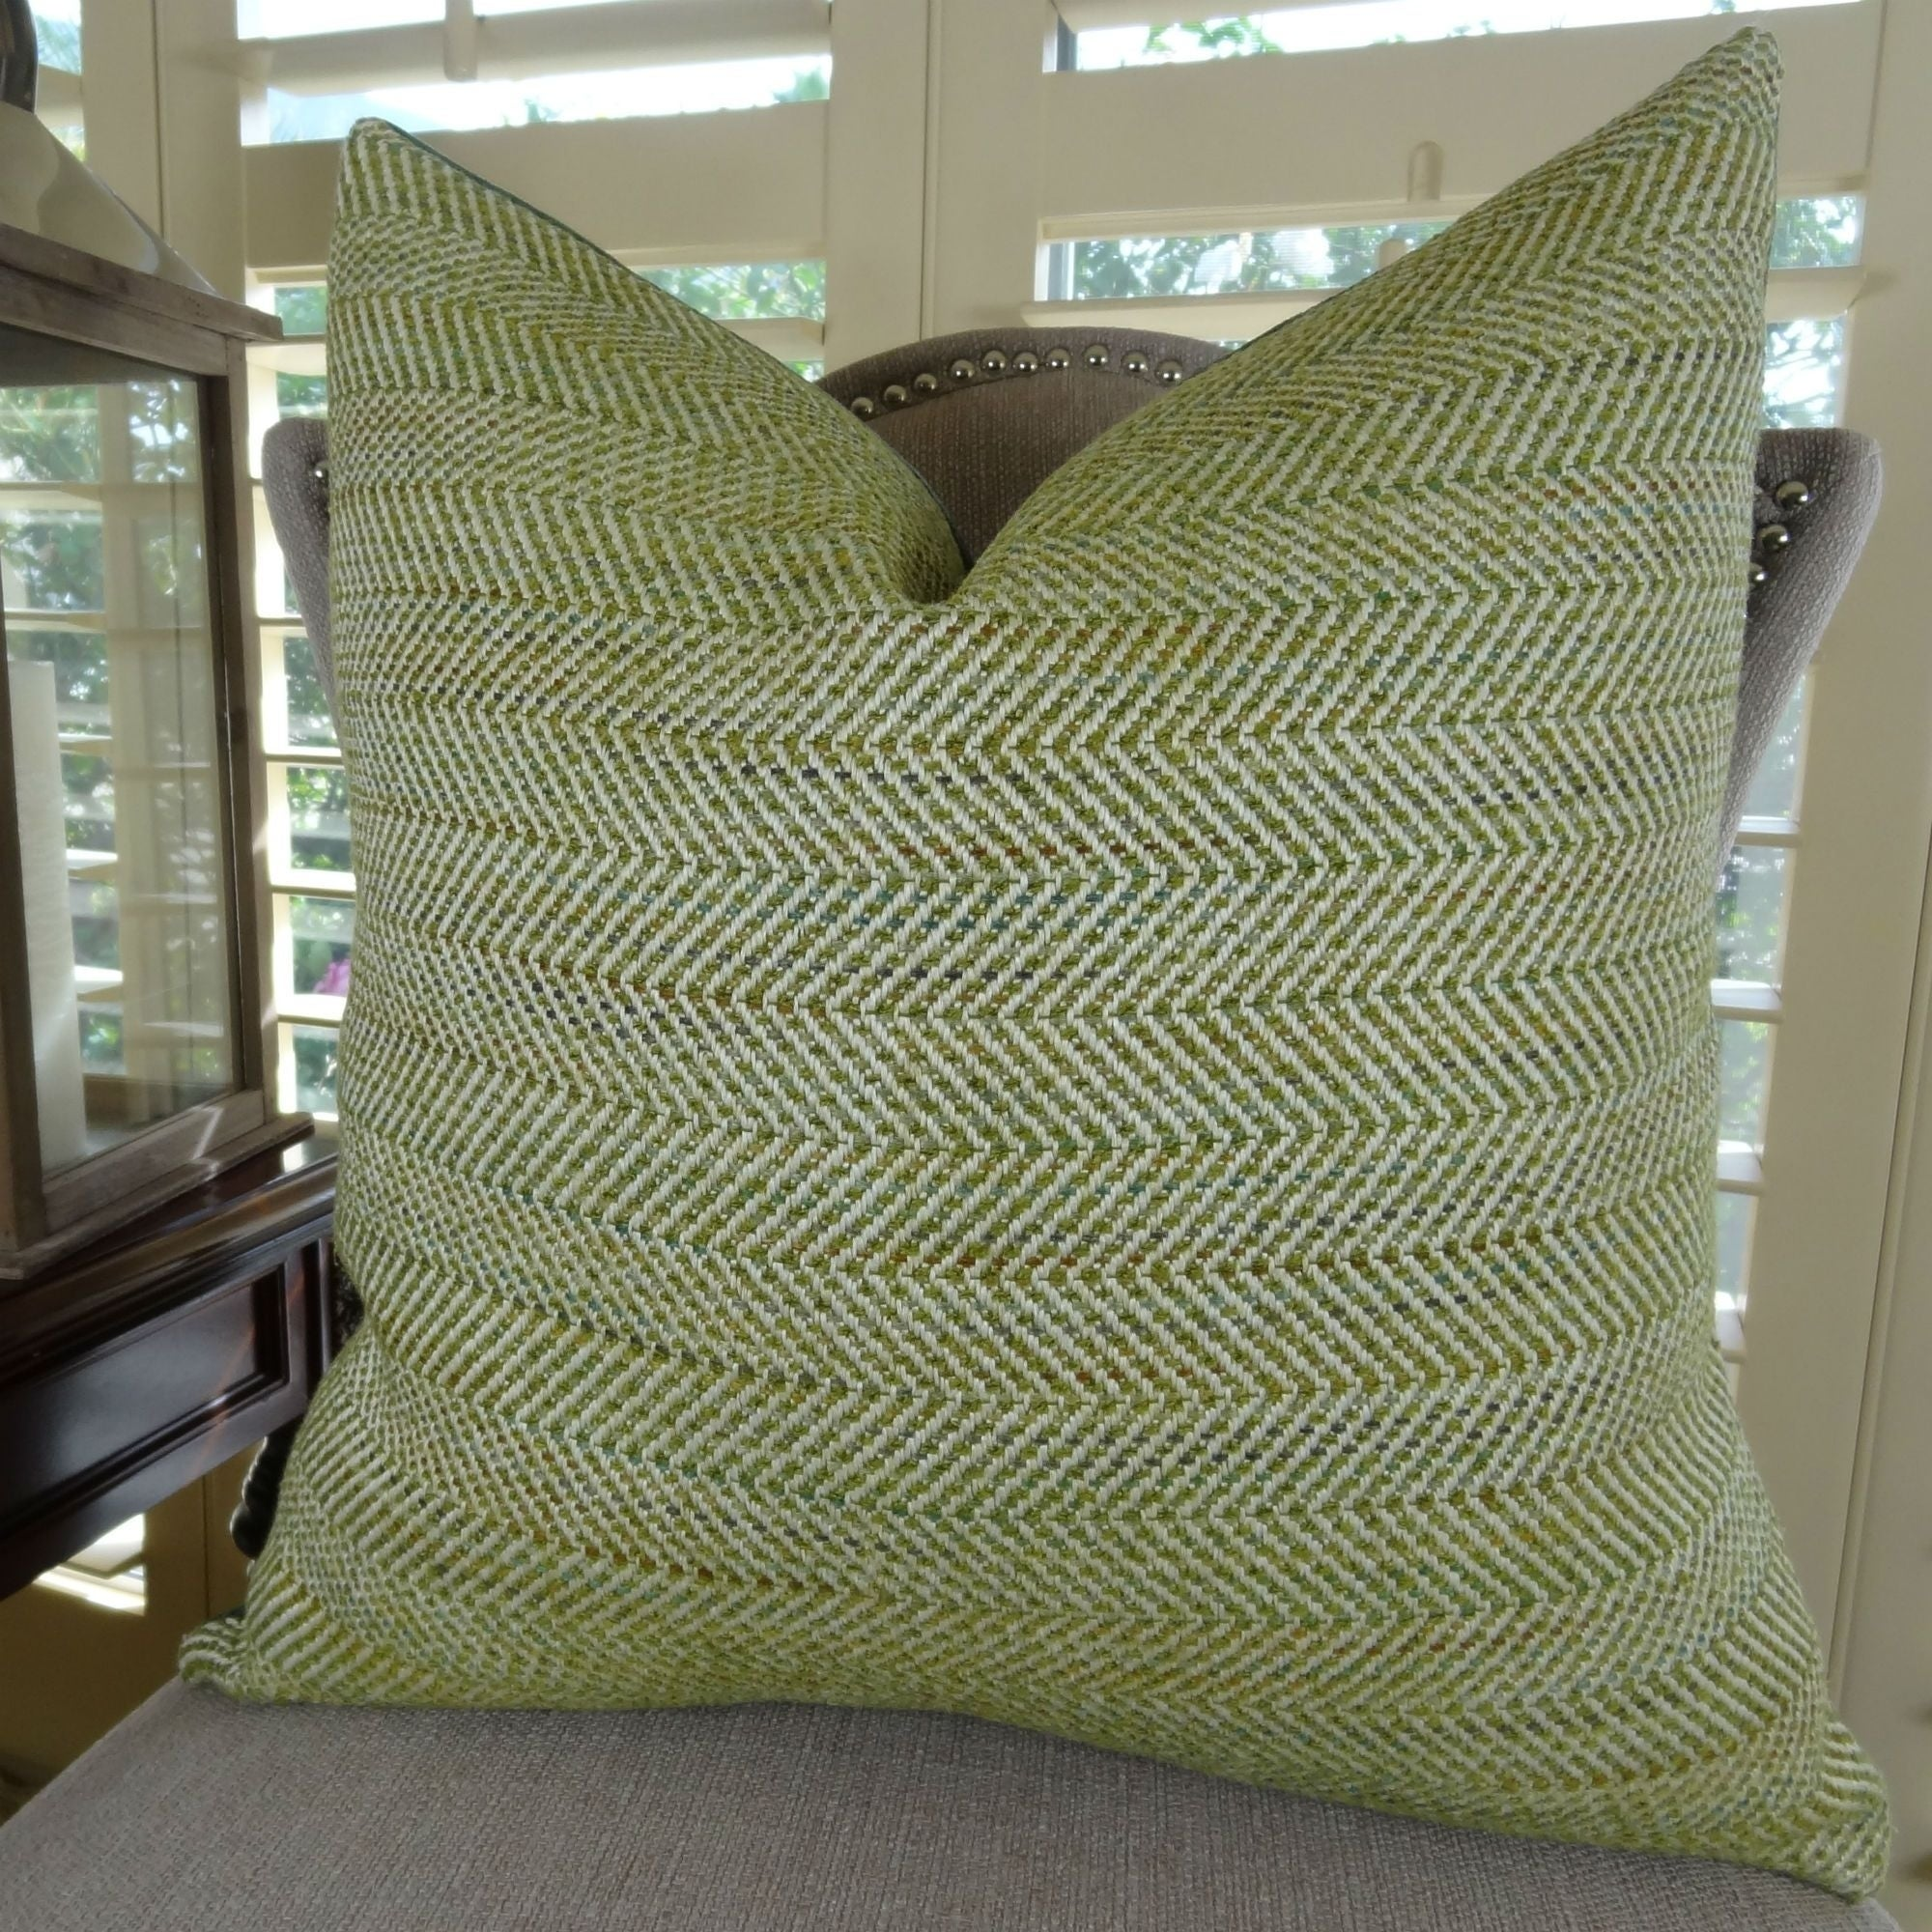 Thomas Collection Light Green Ivory Zig Zag Designer Couch Pillow, Handmade in USA, 11356D (Medium - Square - double sided 18 x 18)